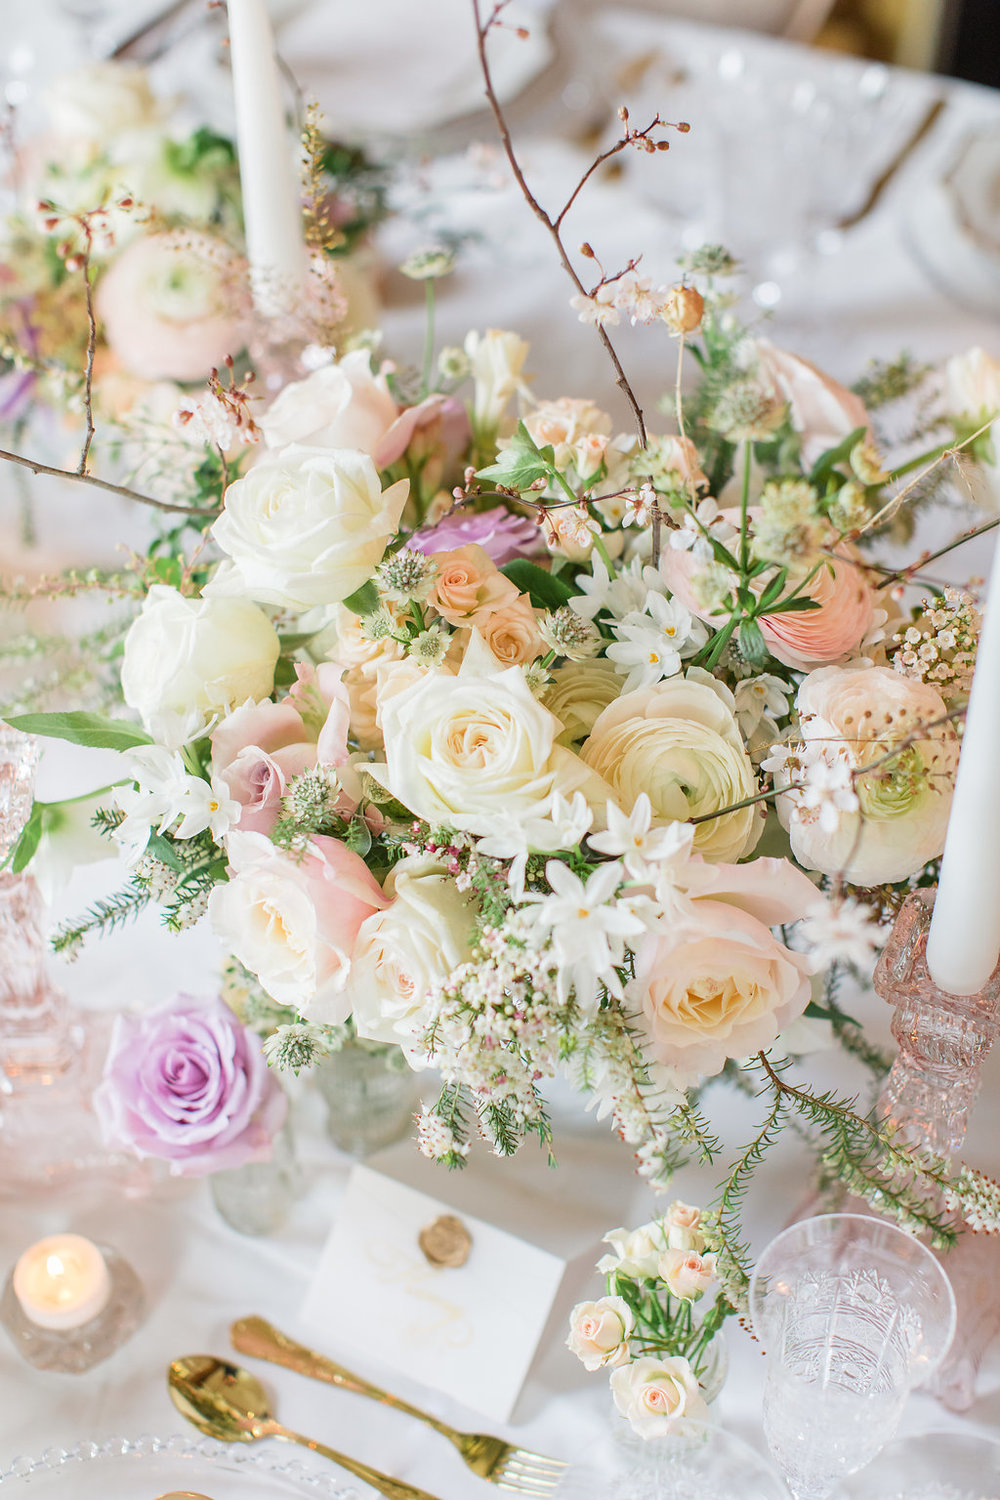 The Timeless Stylist-Elegant and Romantic Wedding Styling-Spring Pastel Flowers